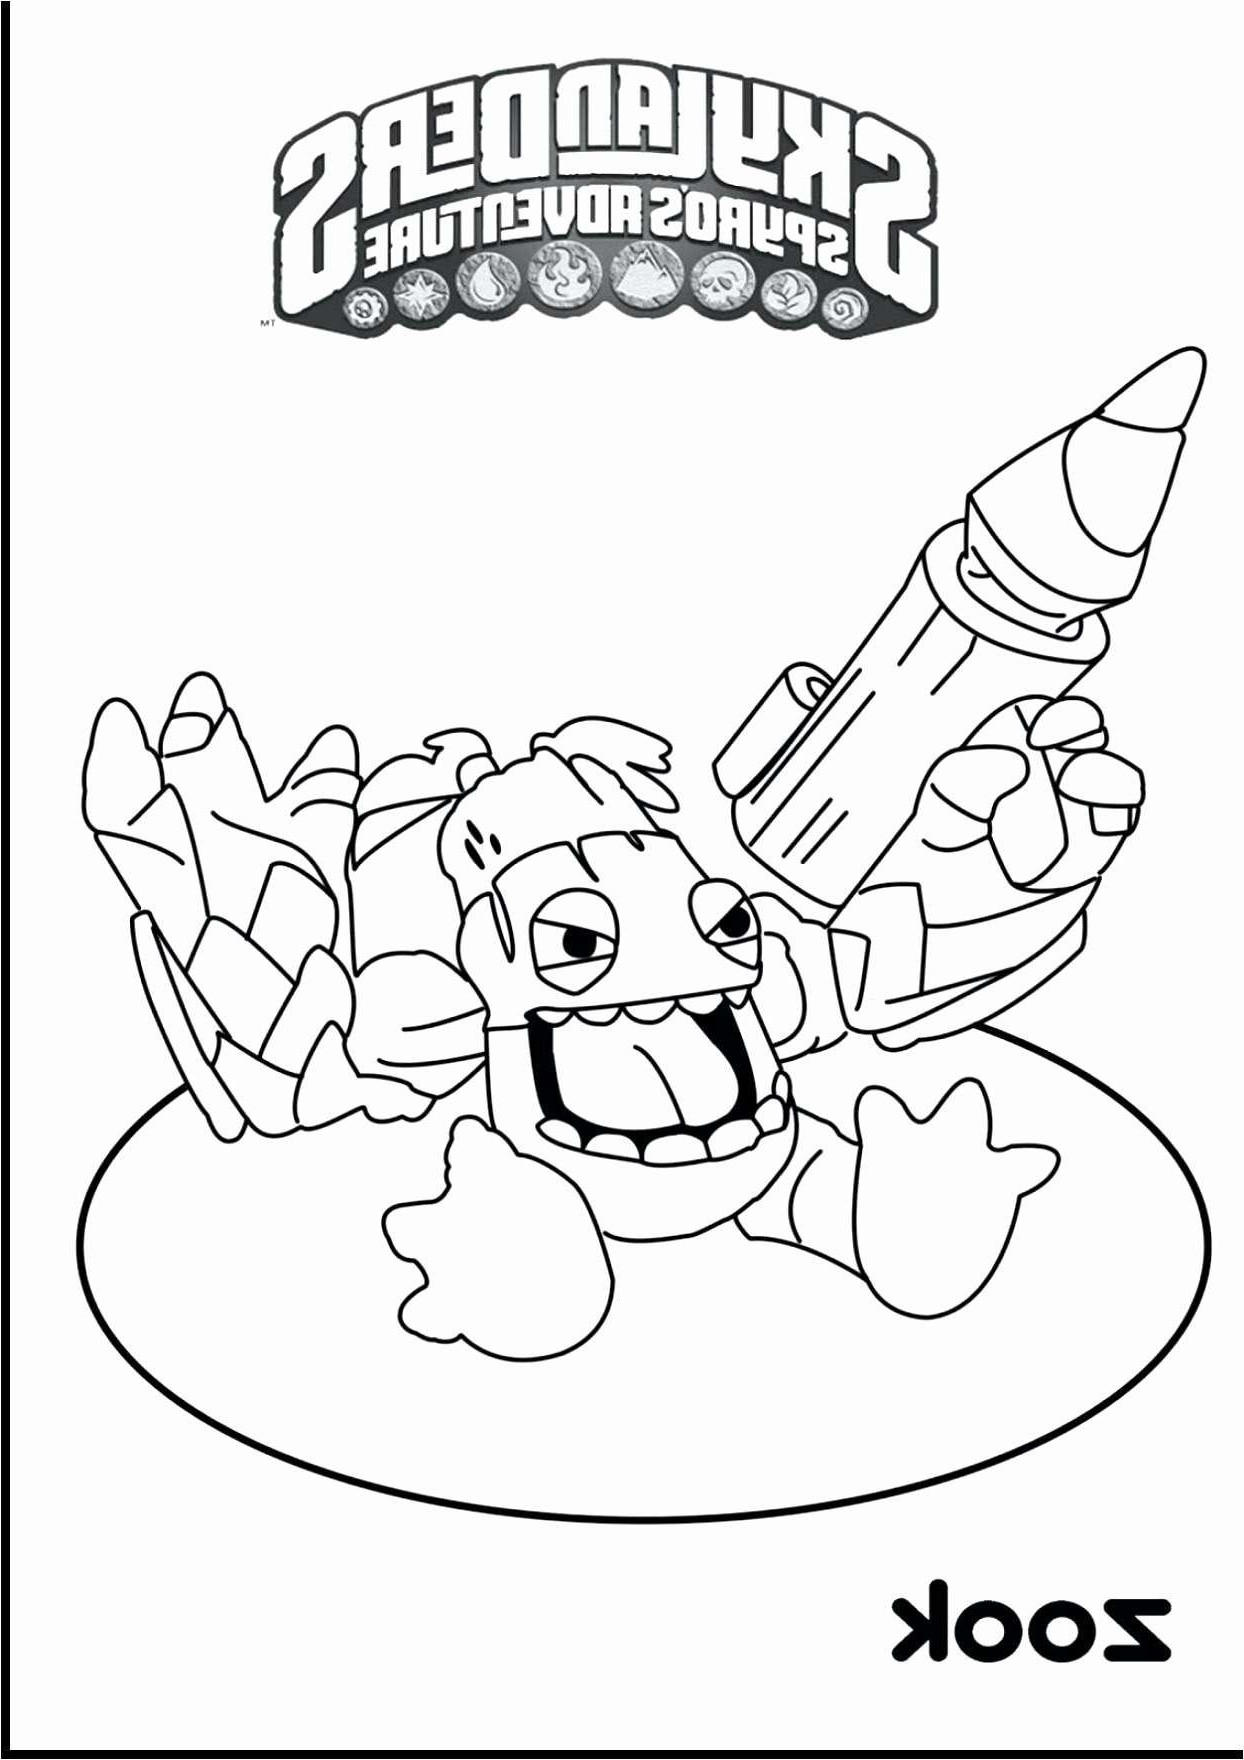 Christmas Coloring Pages For Adults Online With Valid Color 5h7k